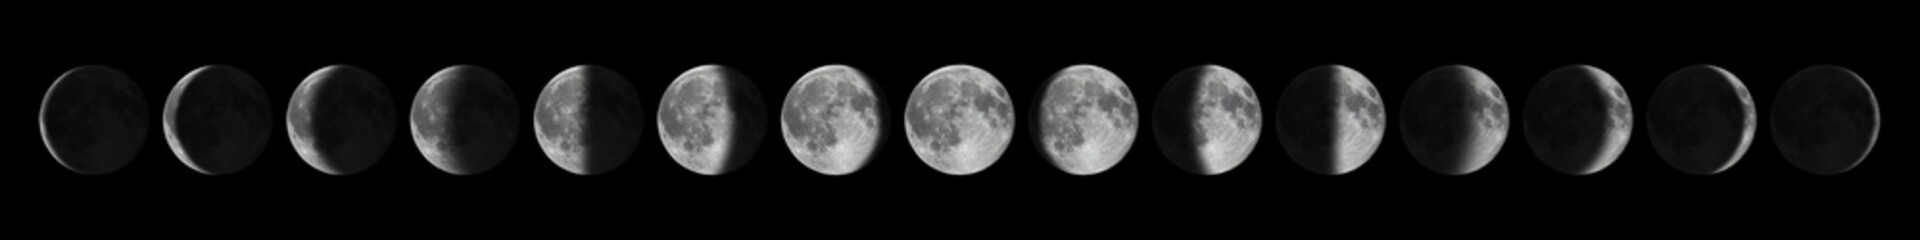 Phases of the Moon. Moon lunar cycle.